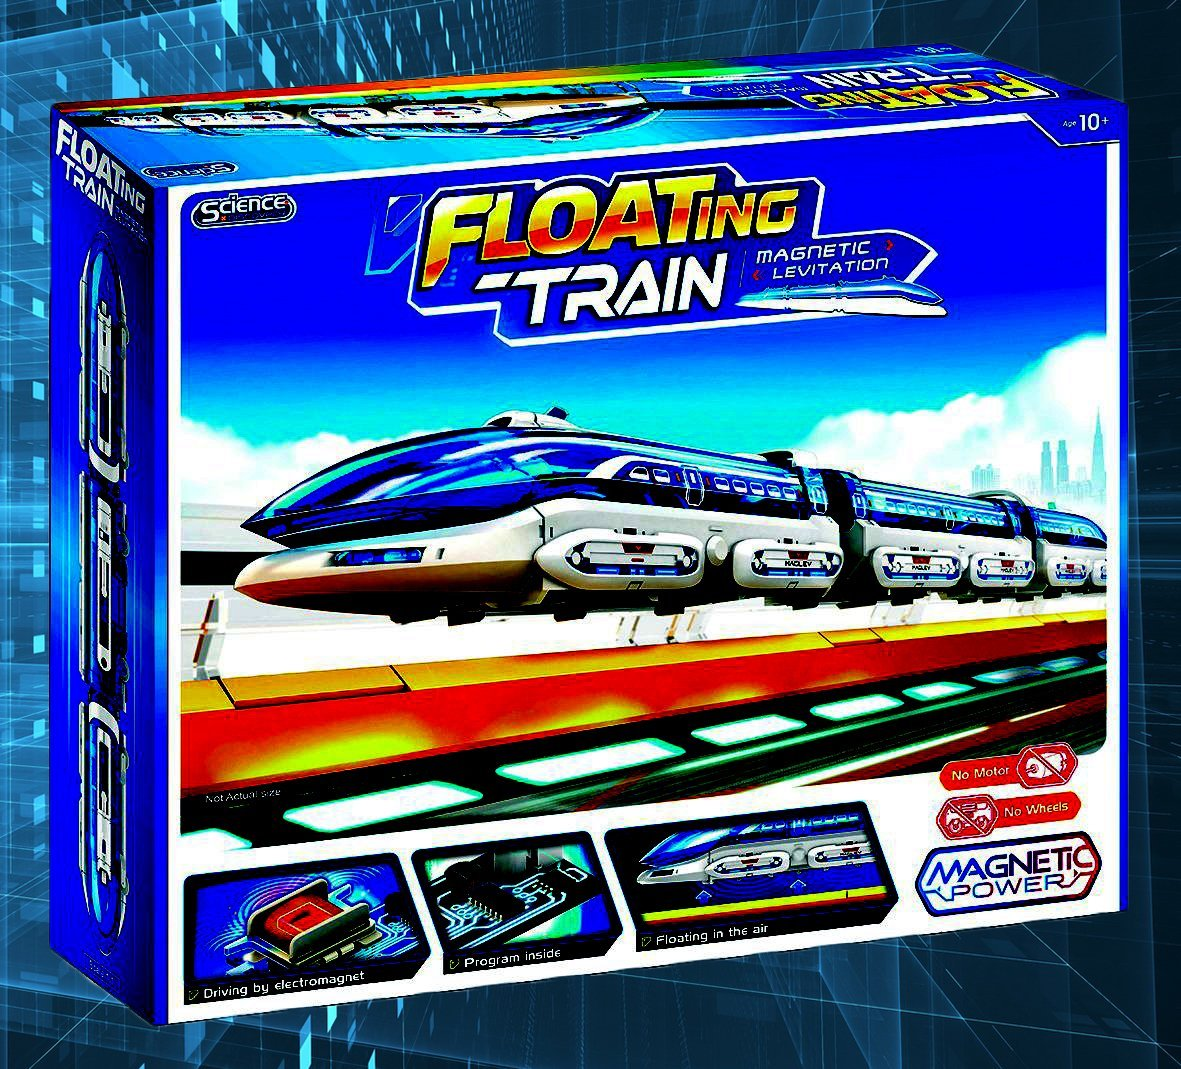 Johnco Magnetic Levitation Floating Train Set